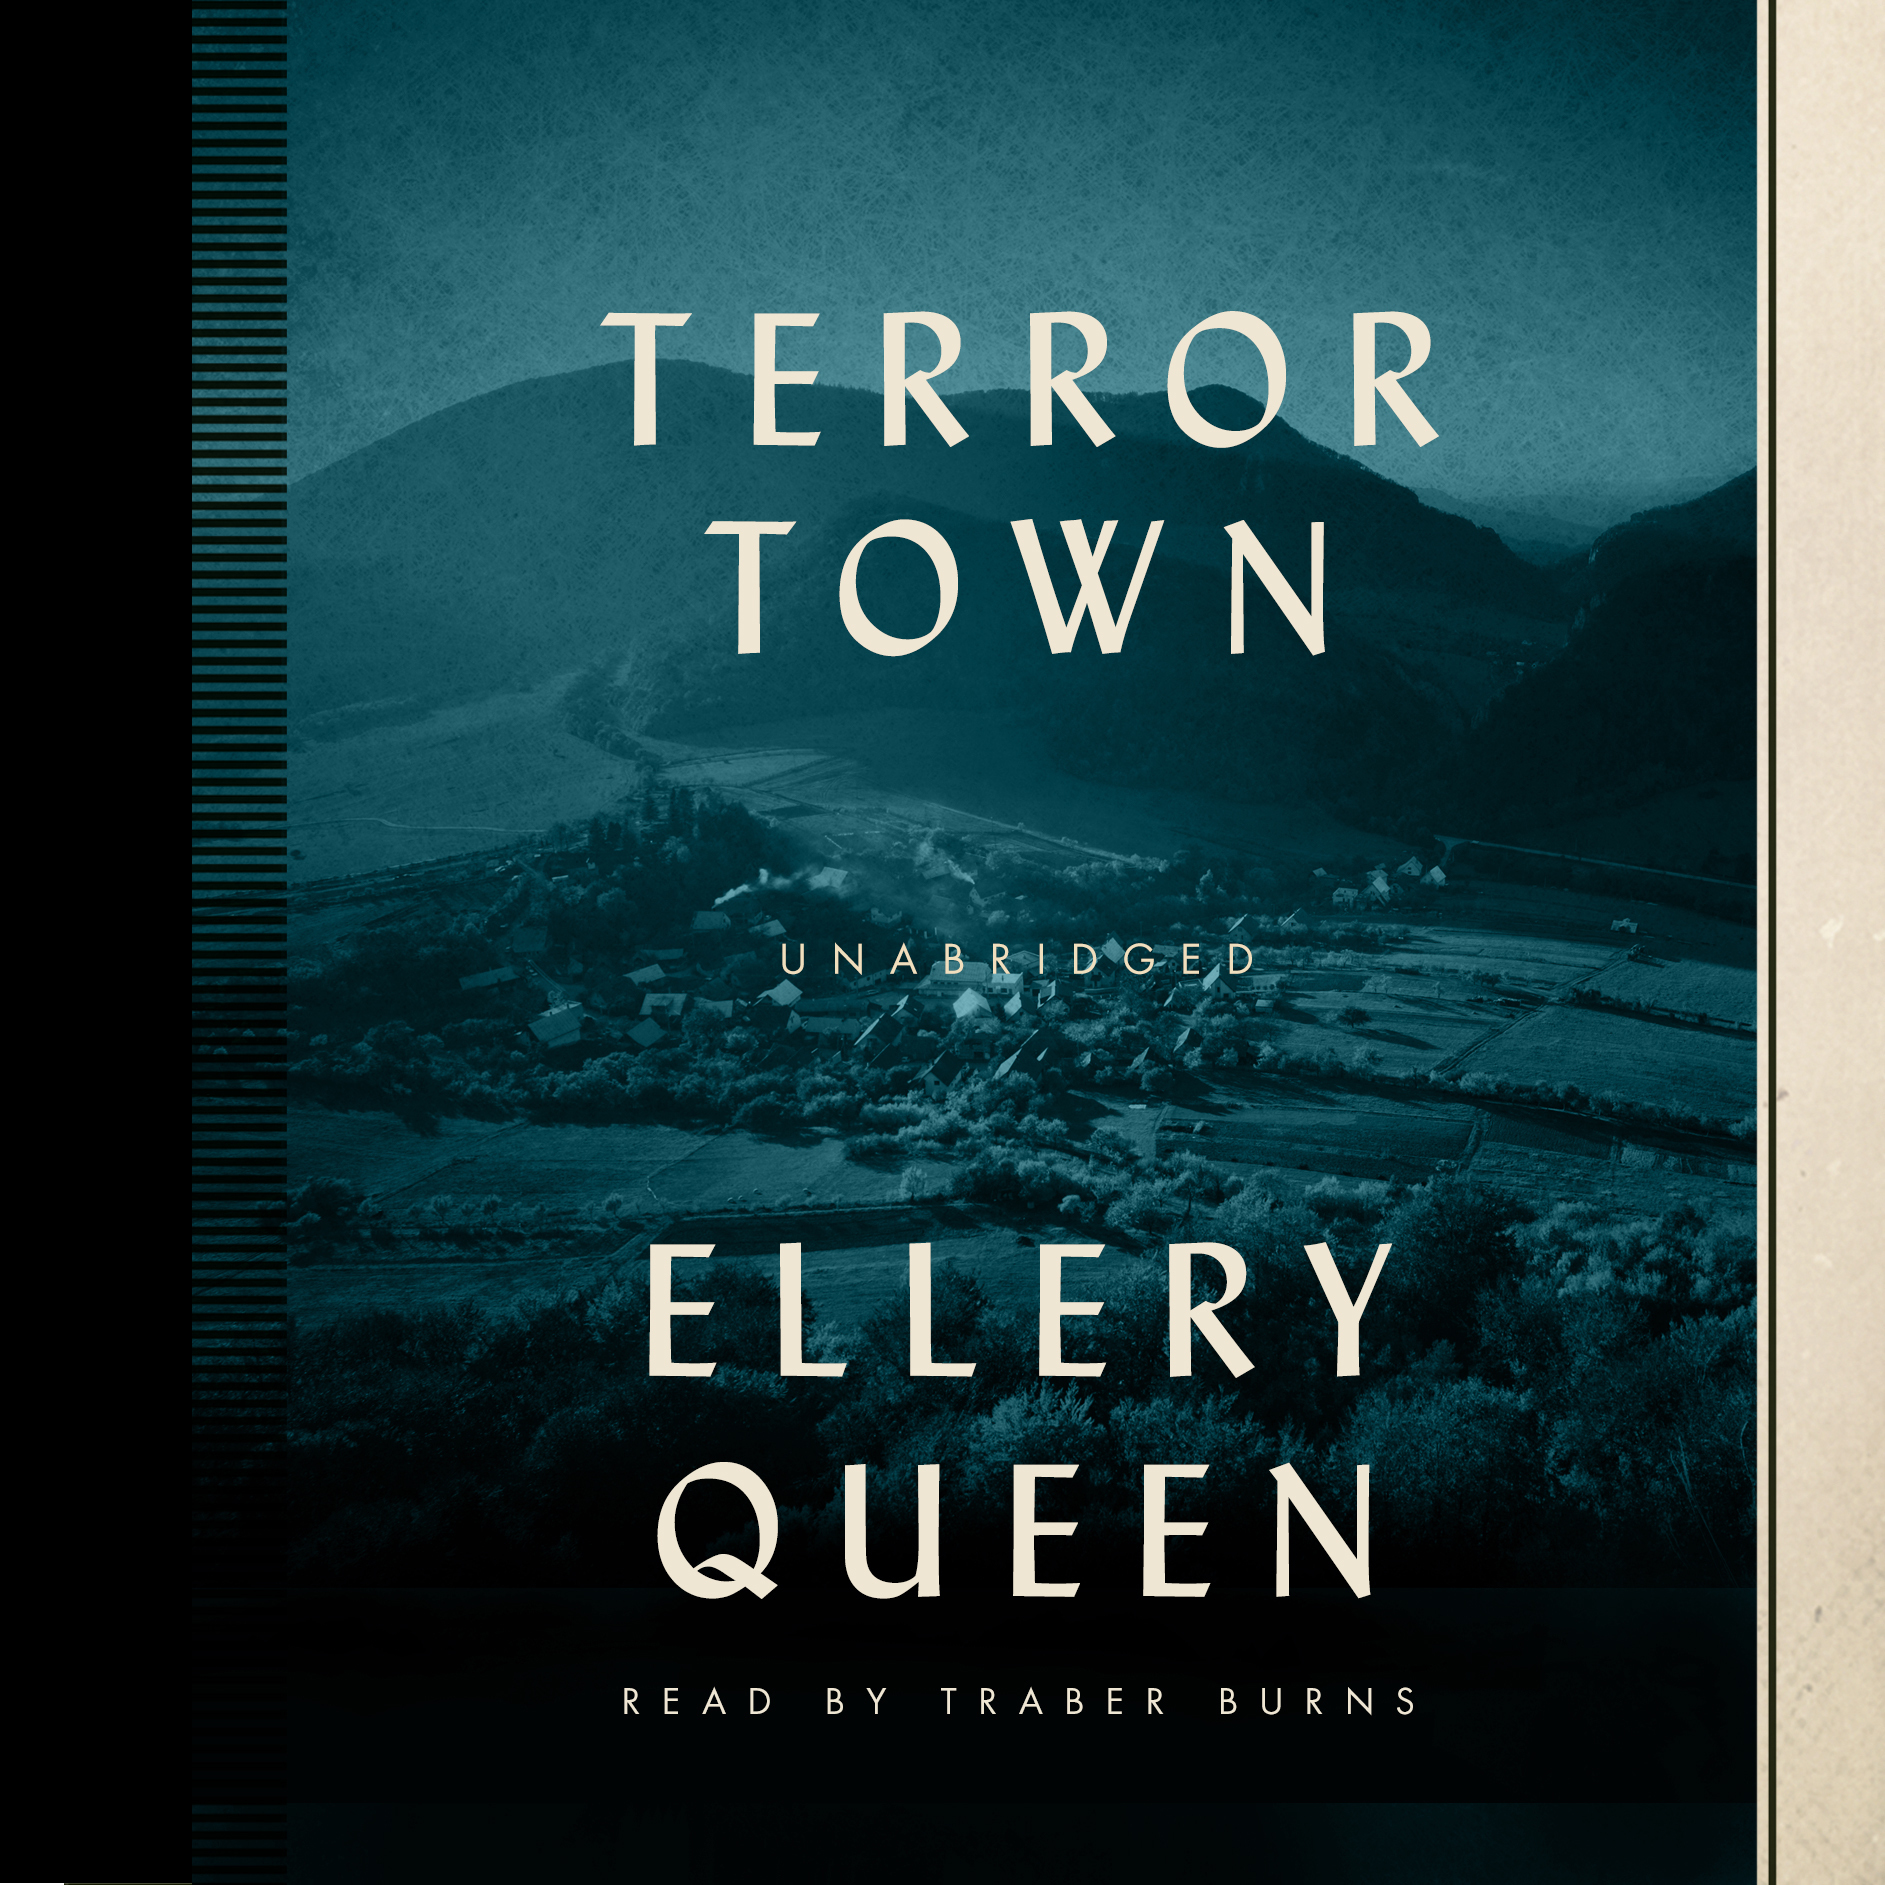 Printable Terror Town Audiobook Cover Art